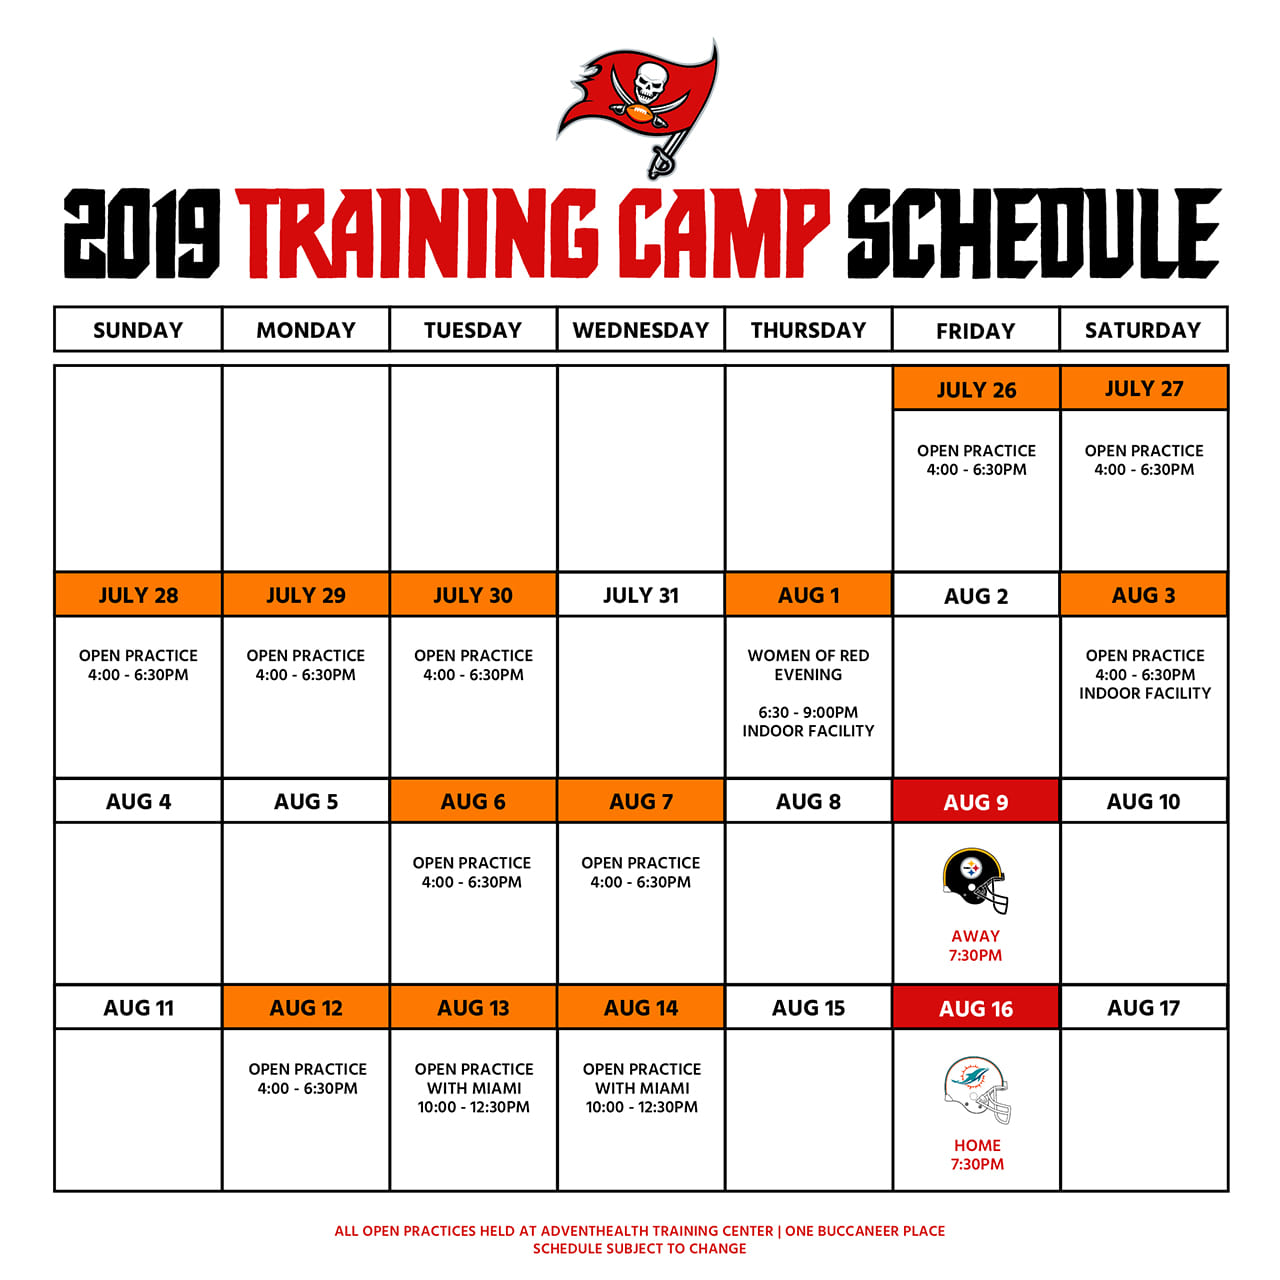 224dedaf0 Tickets and parking are completely FREE. Click the links below for more  information and to get your tickets for 2019 Buccaneers Training Camp!